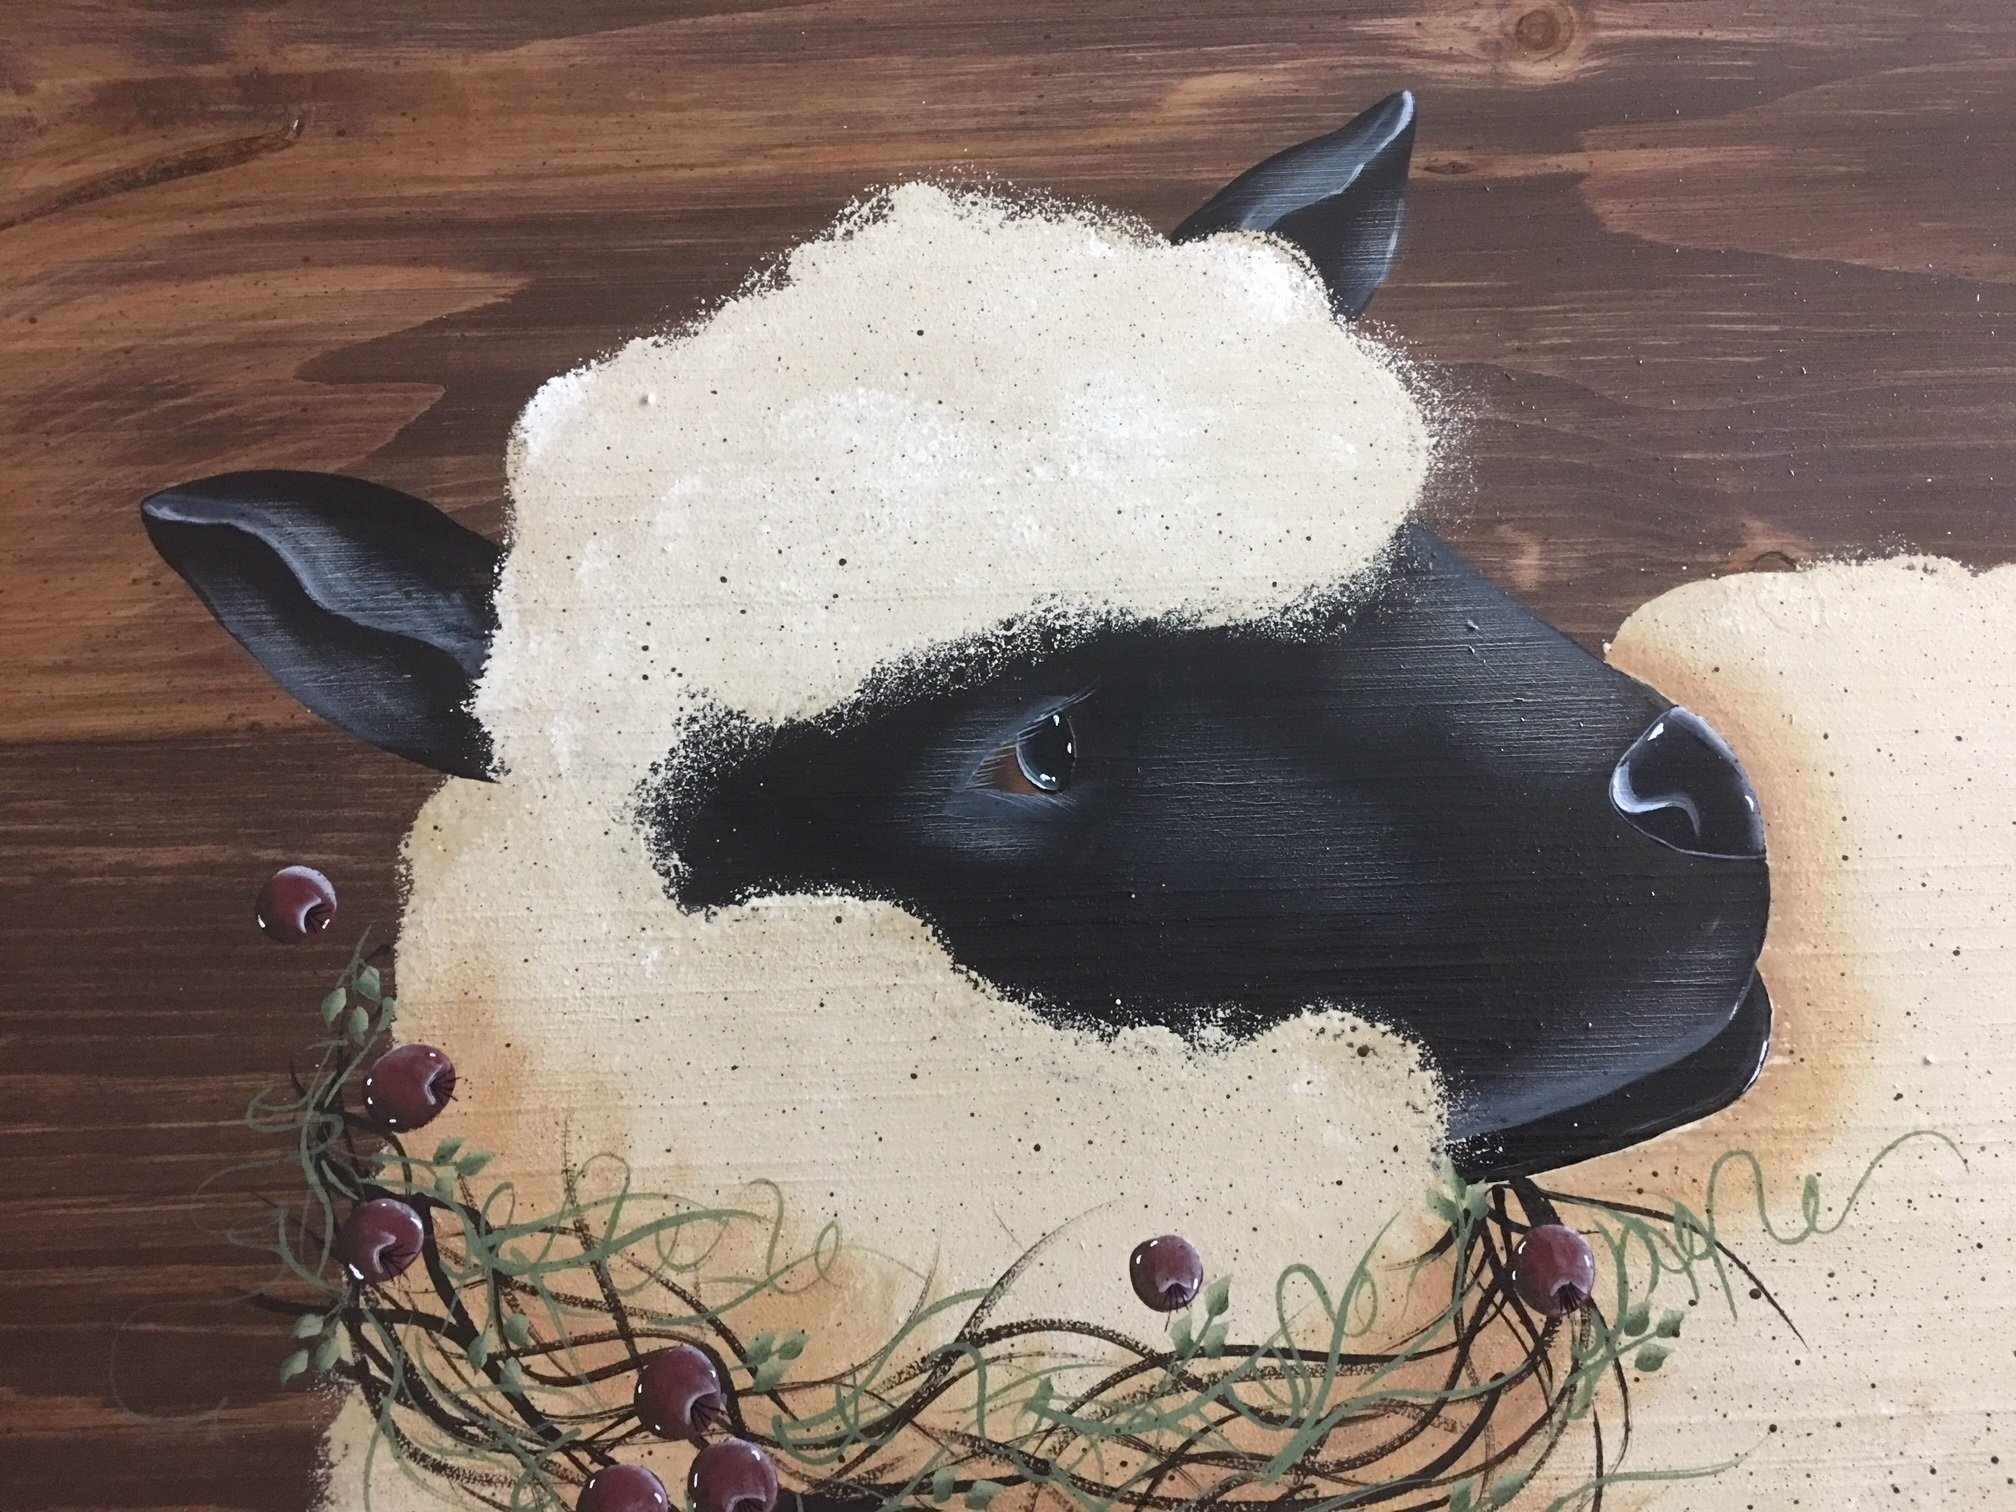 Primitive Painted Decor Suffolk Sheep Gooseberry Wreath Wood Stove Noodle Board 24X30 by Primitive Country Loft House (Image #2)